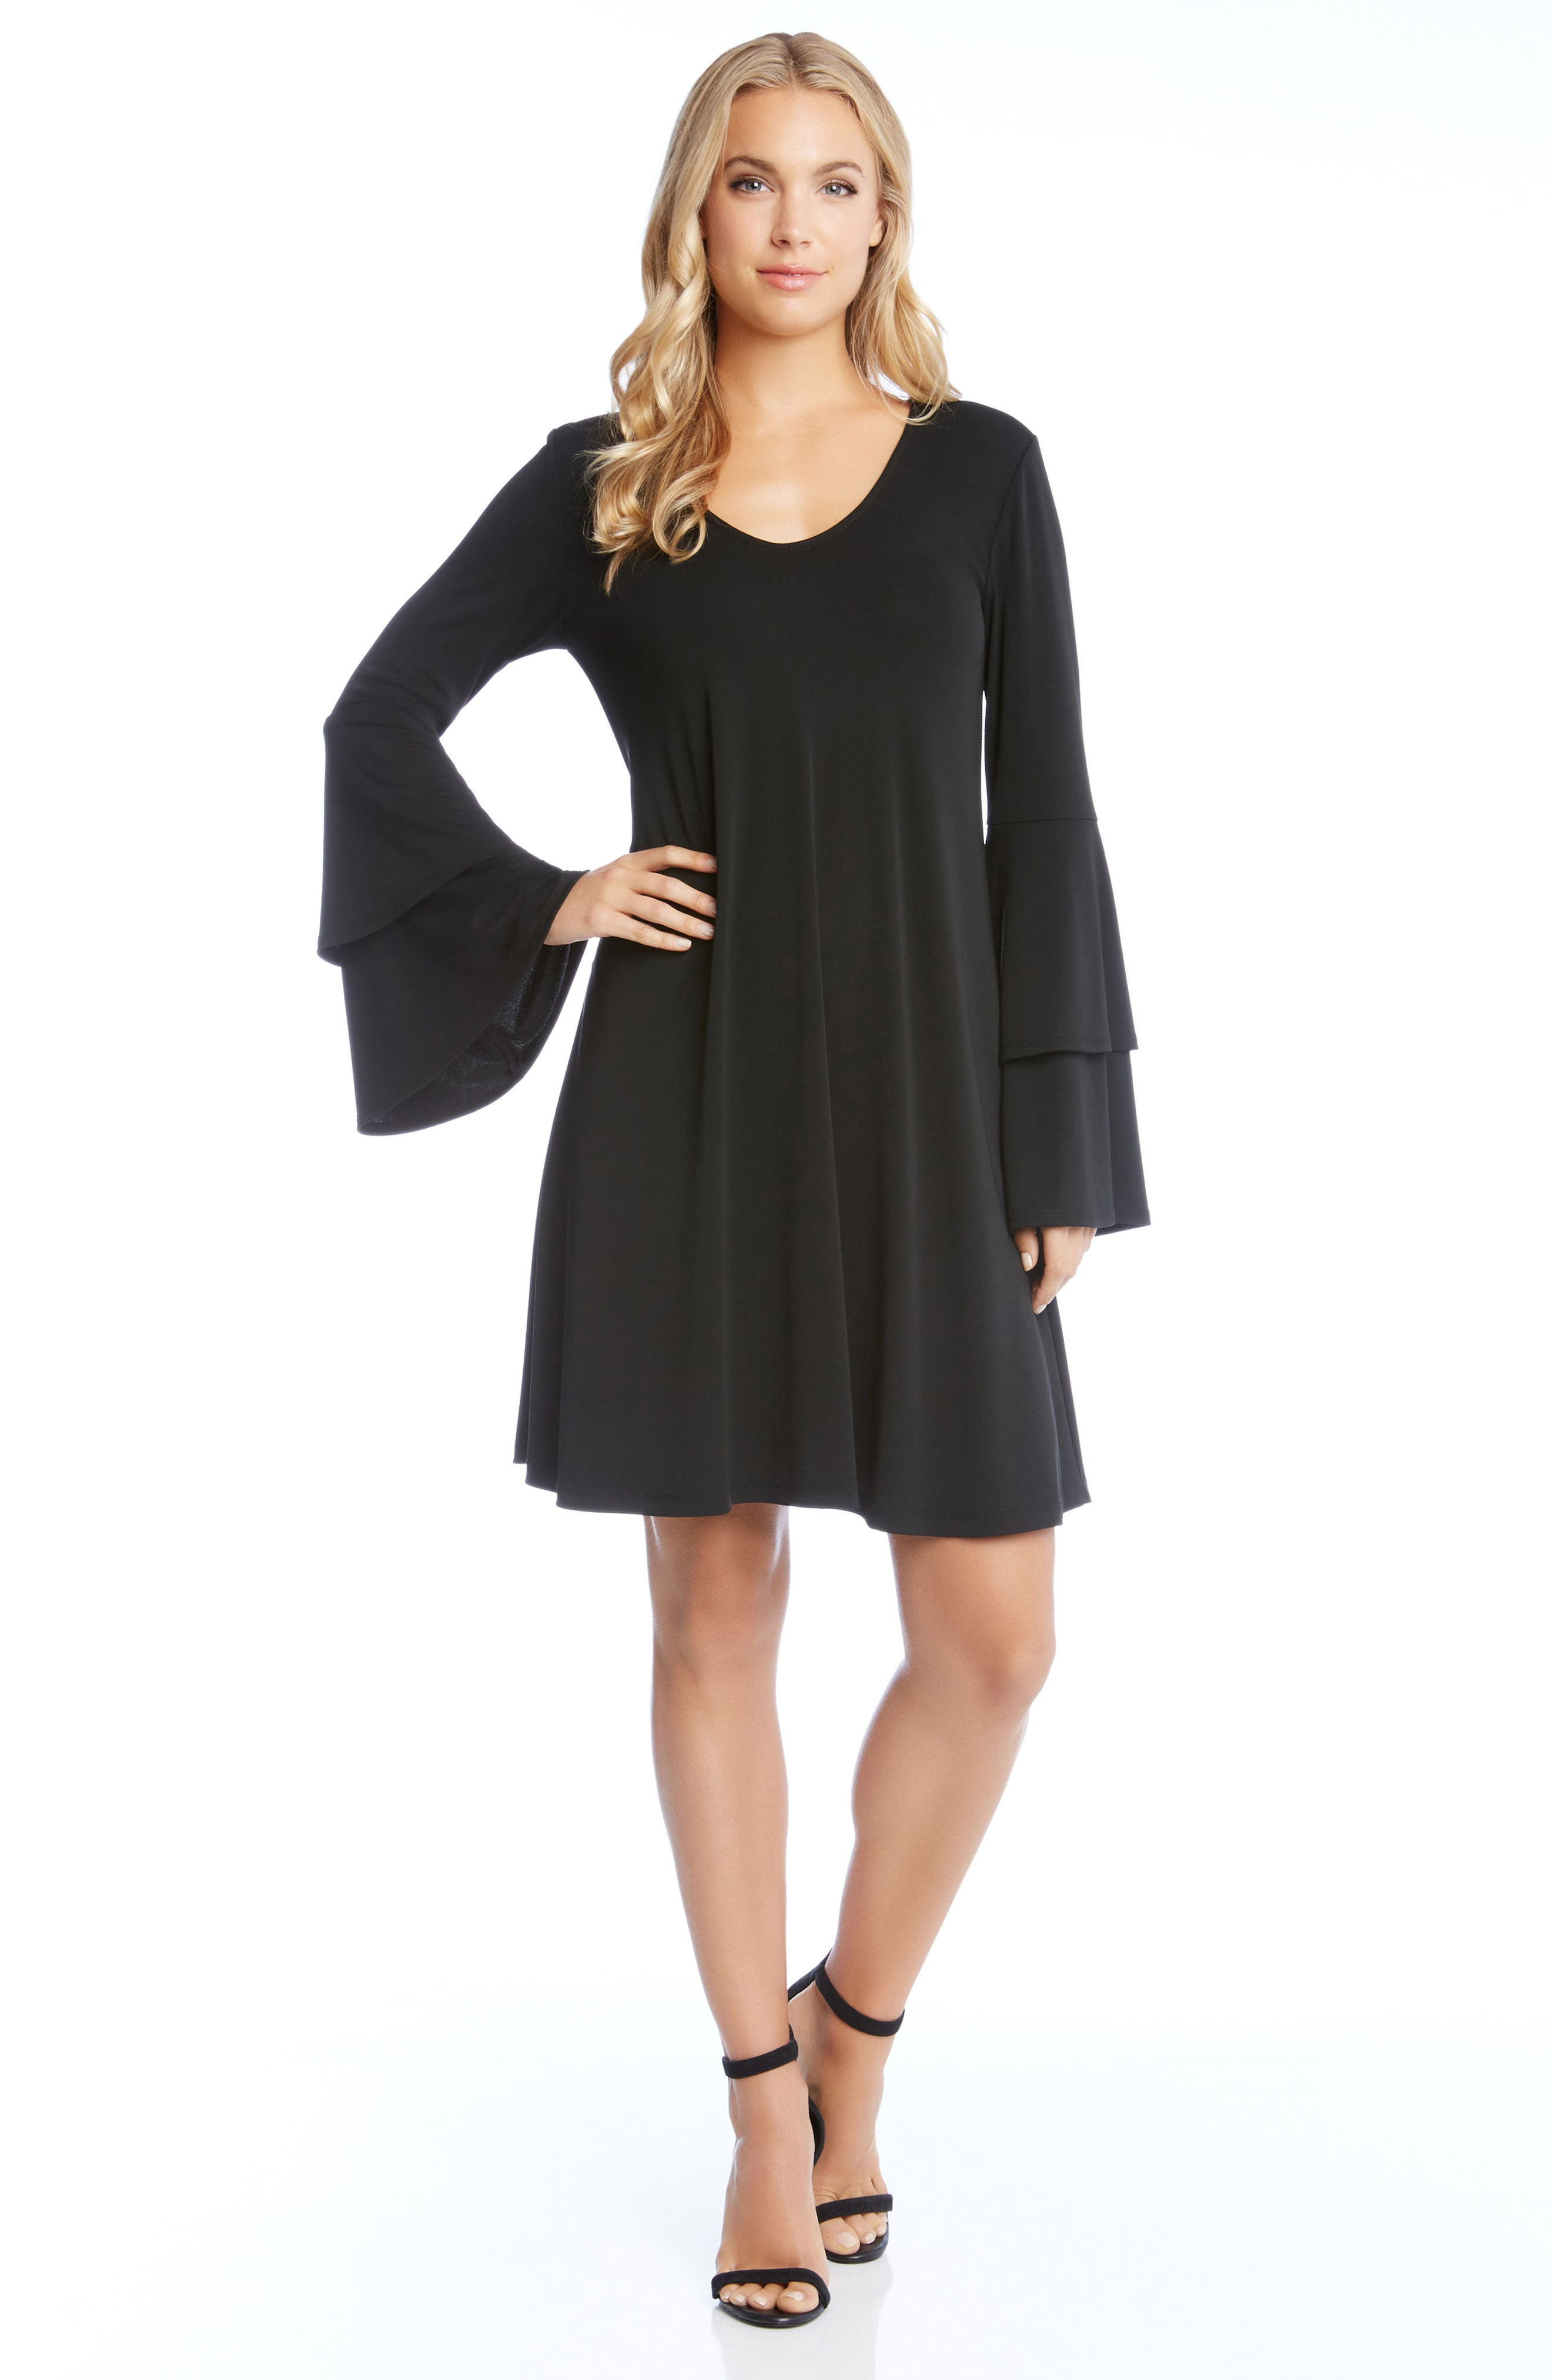 Tiered Bell Sleeve A-Line Dress,                             Alternate thumbnail 3, color,                             001